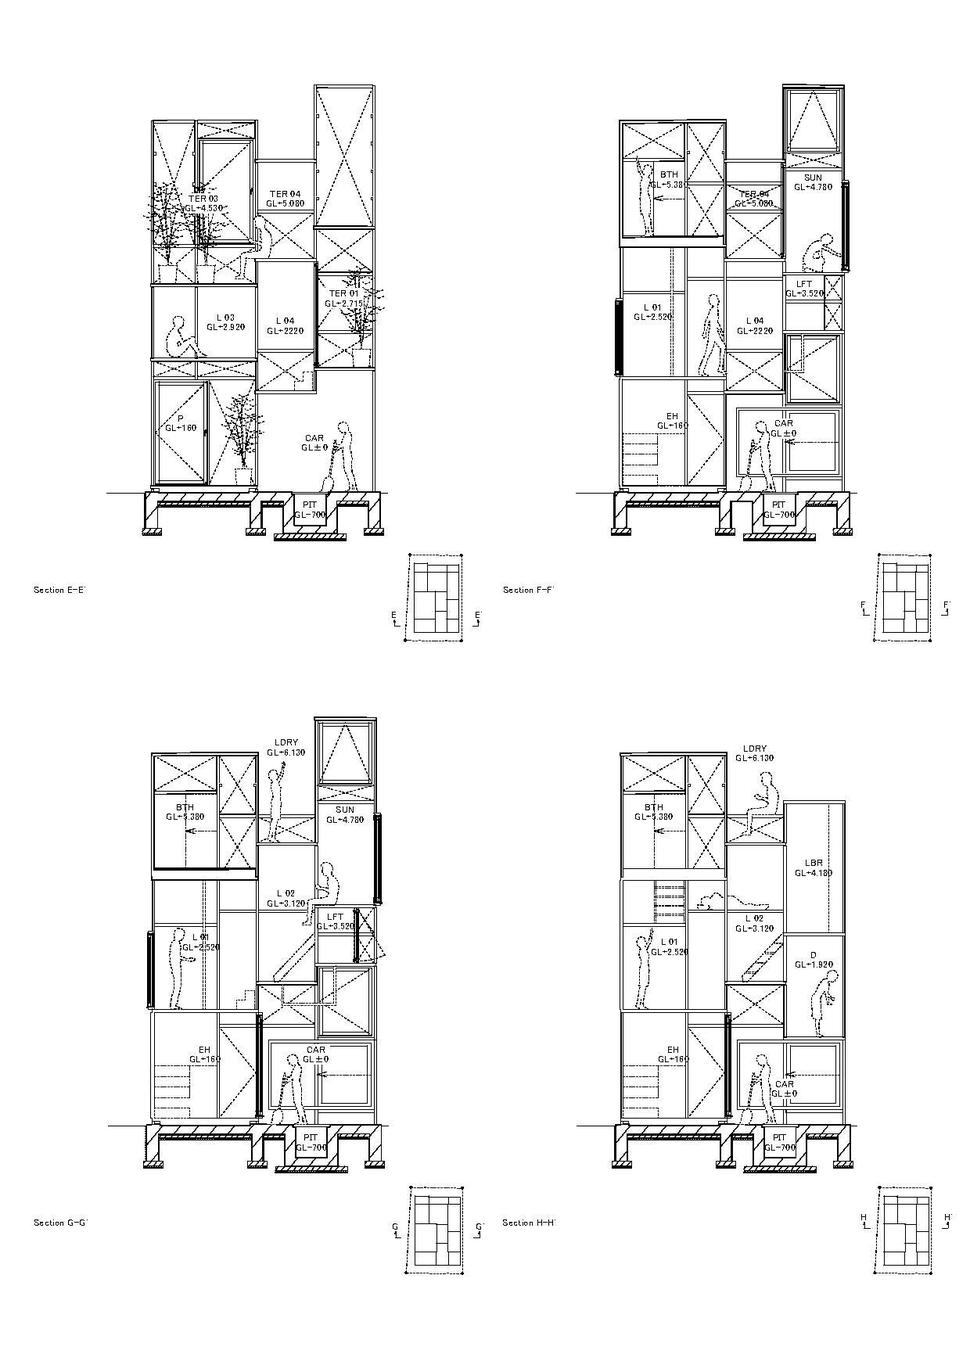 Urban Gl-Walled House With Platform Living Spaces on framing plans, narrow house layout, narrow house roof, narrow 3 story house, narrow house elevations, narrow cabinets, narrow home, narrow bedroom, narrow doors, narrow garden, narrow house interior design, narrow yard landscaping ideas, narrow kitchens, narrow lot house, narrow sink, narrow windows, narrow art, narrow beach house, narrow modern house, small lake lot plans,